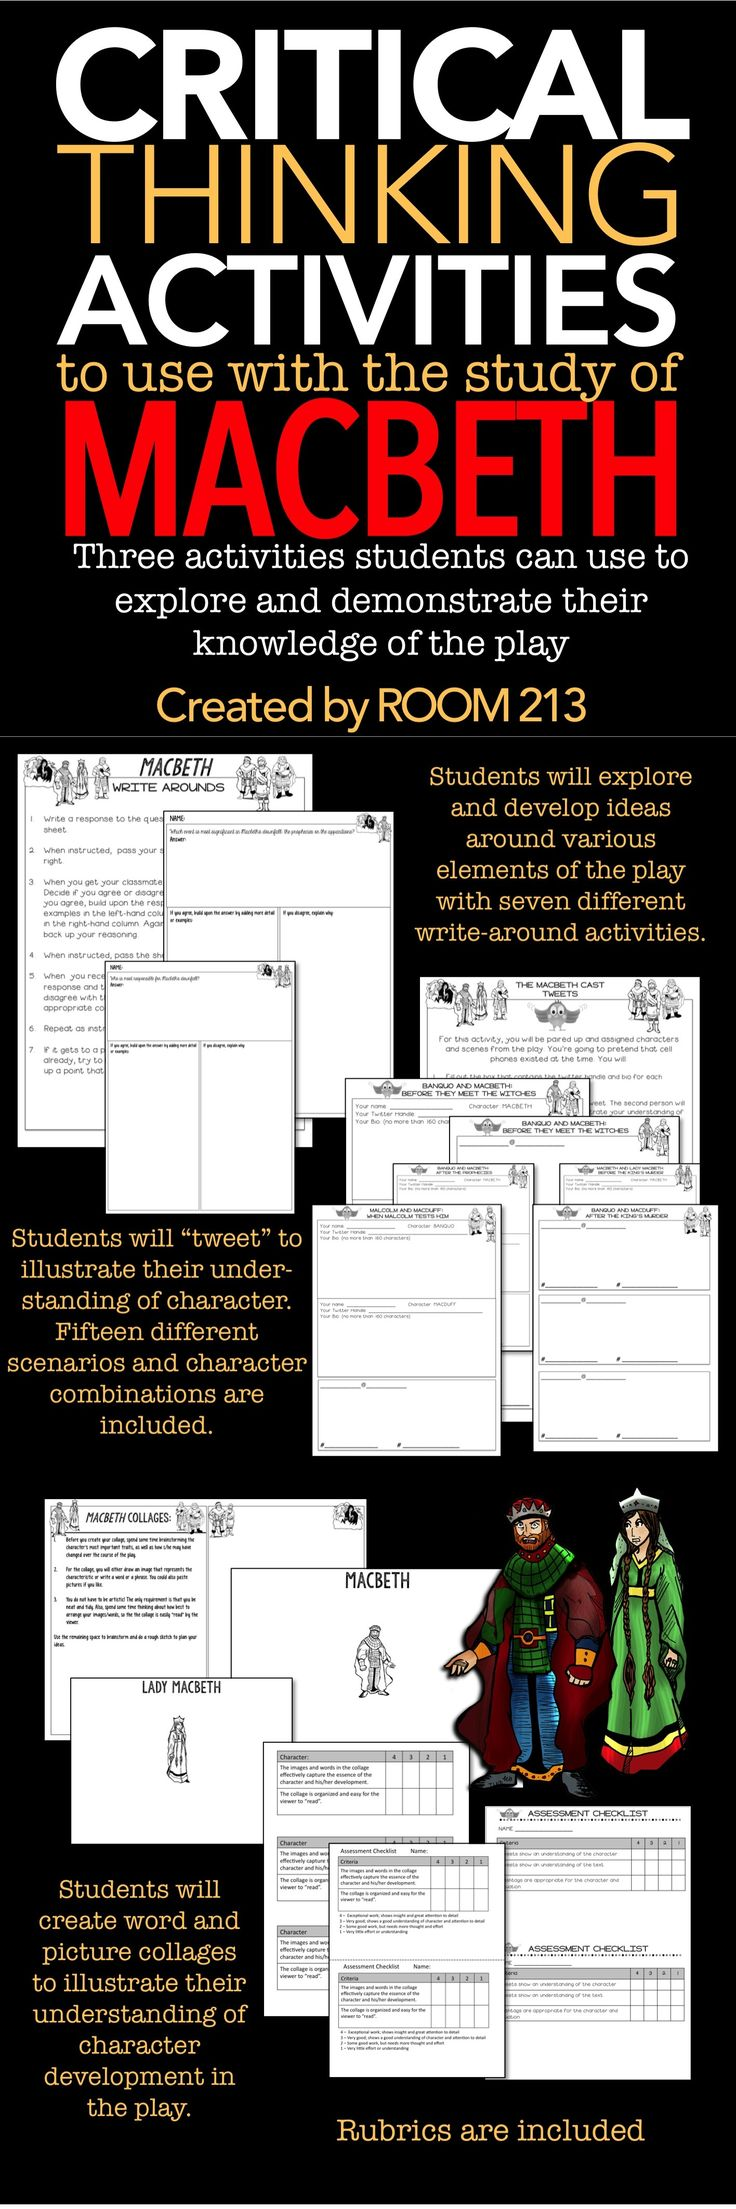 best ideas about macbeth activities macbeth macbeth three activities that your students can use to explore and demonstrate their knowledge of